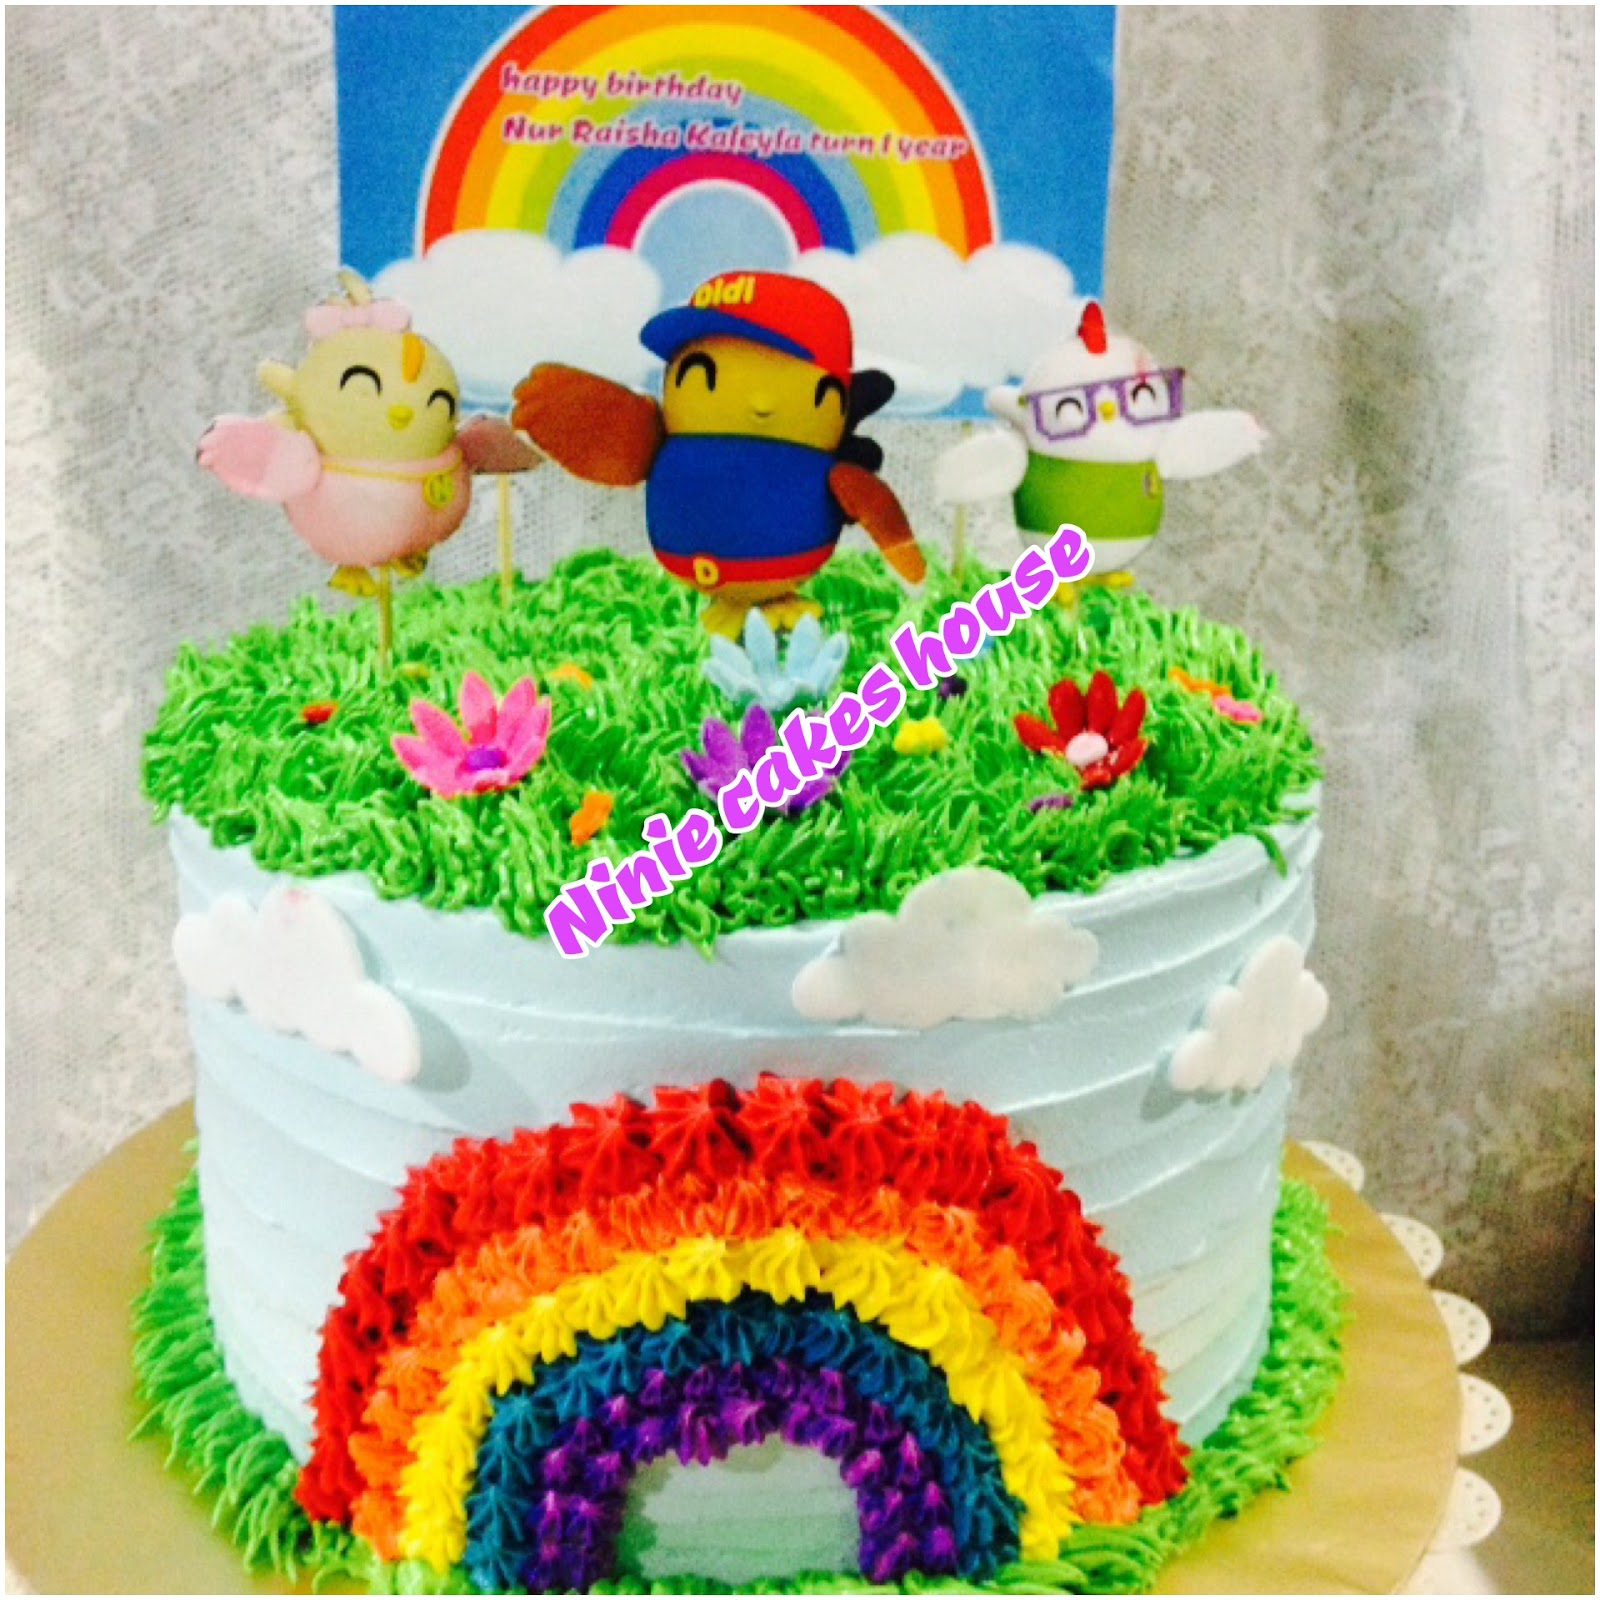 ninie cakes house: Didi & Friends Birthday Cake